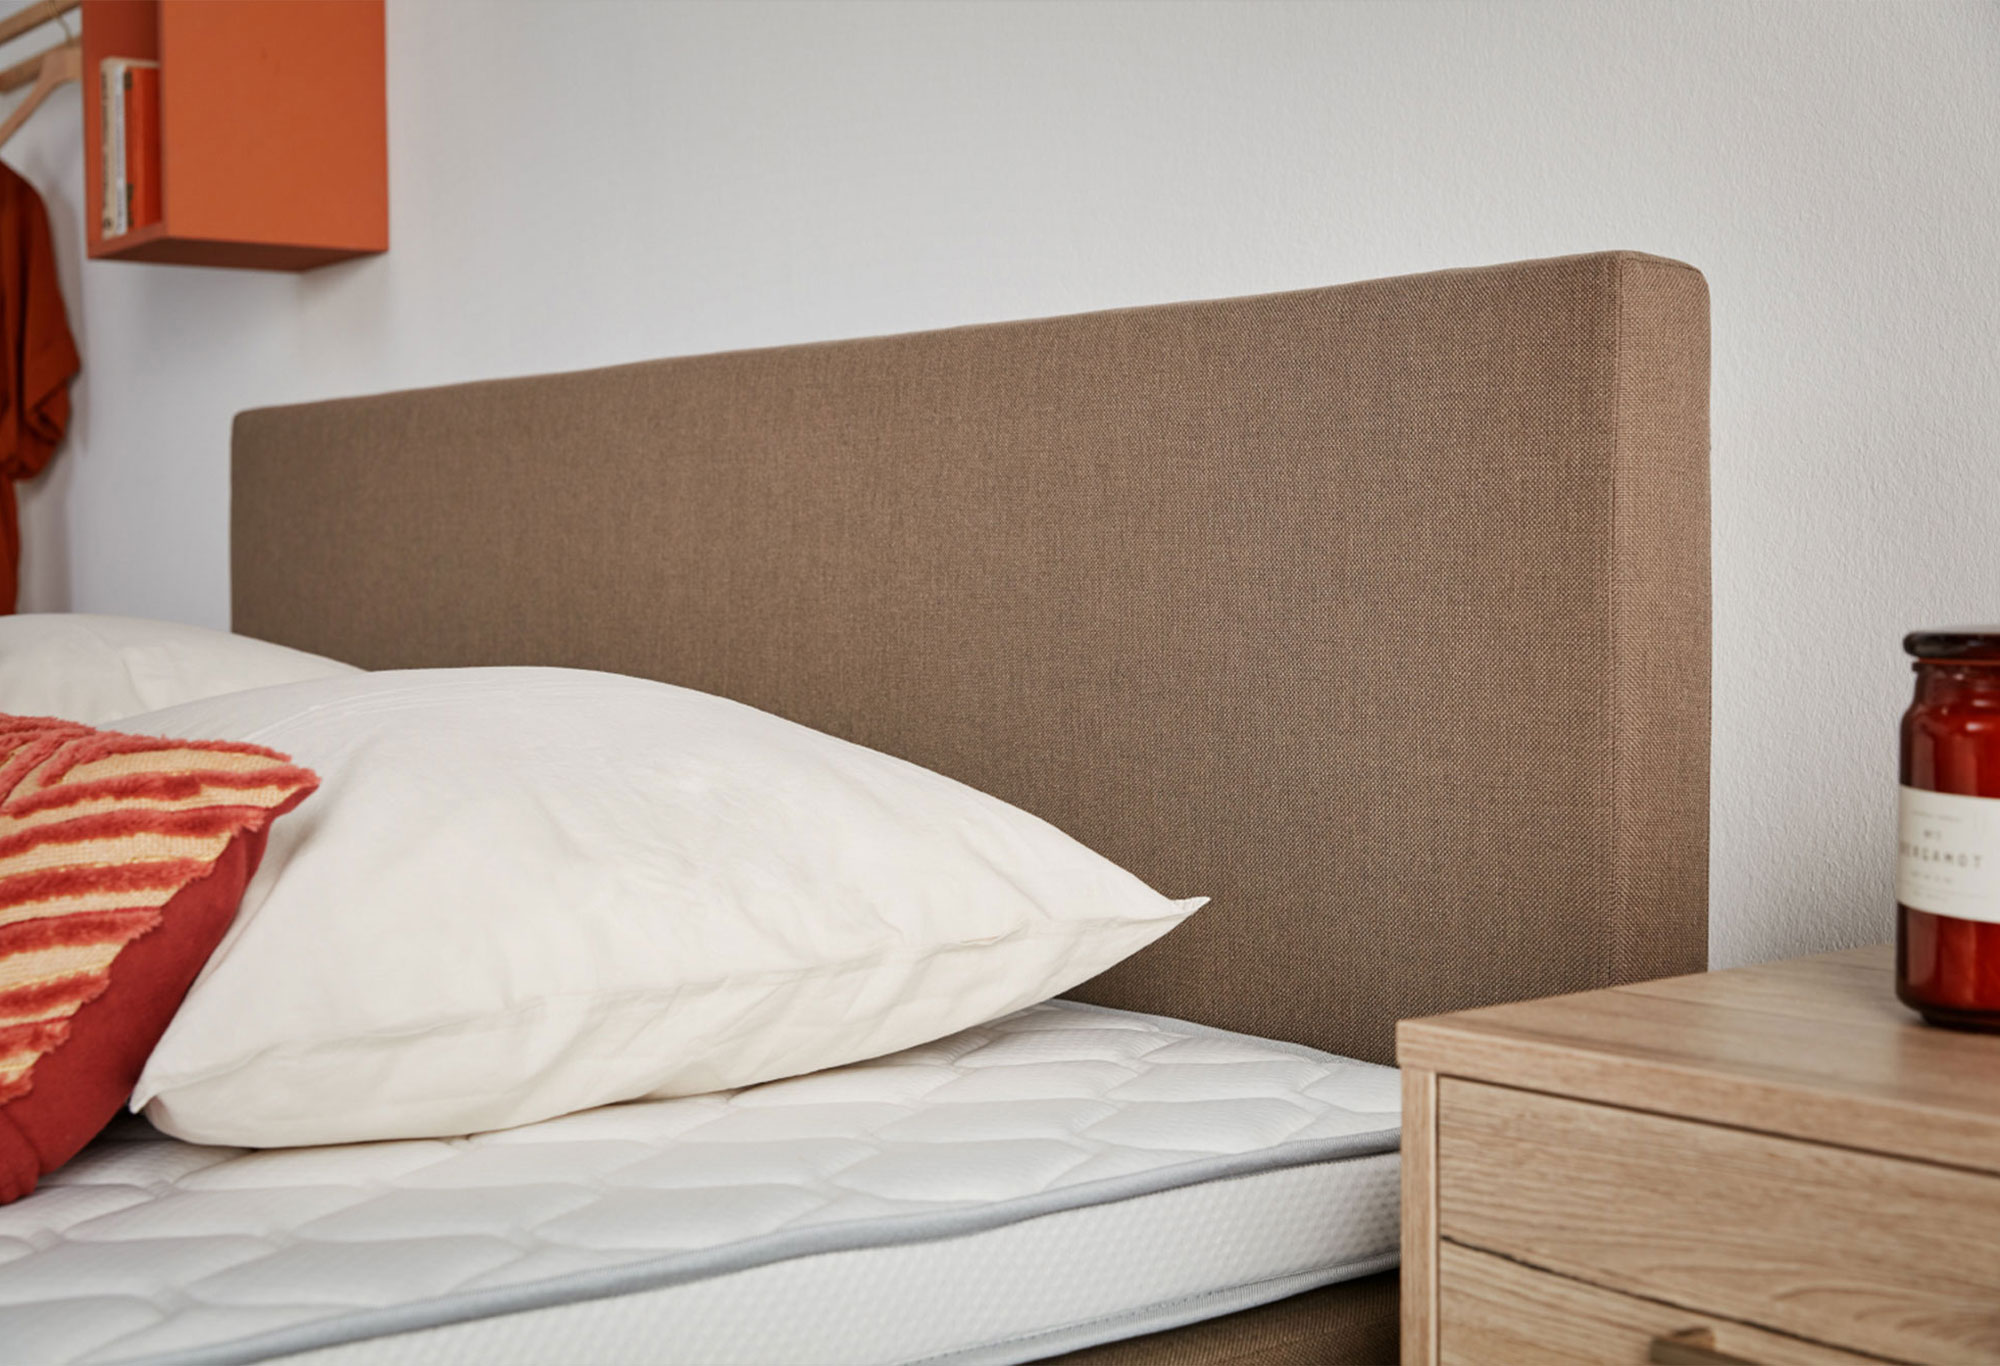 Boxspring Web-Only Rest Deluxe   Swiss Sense